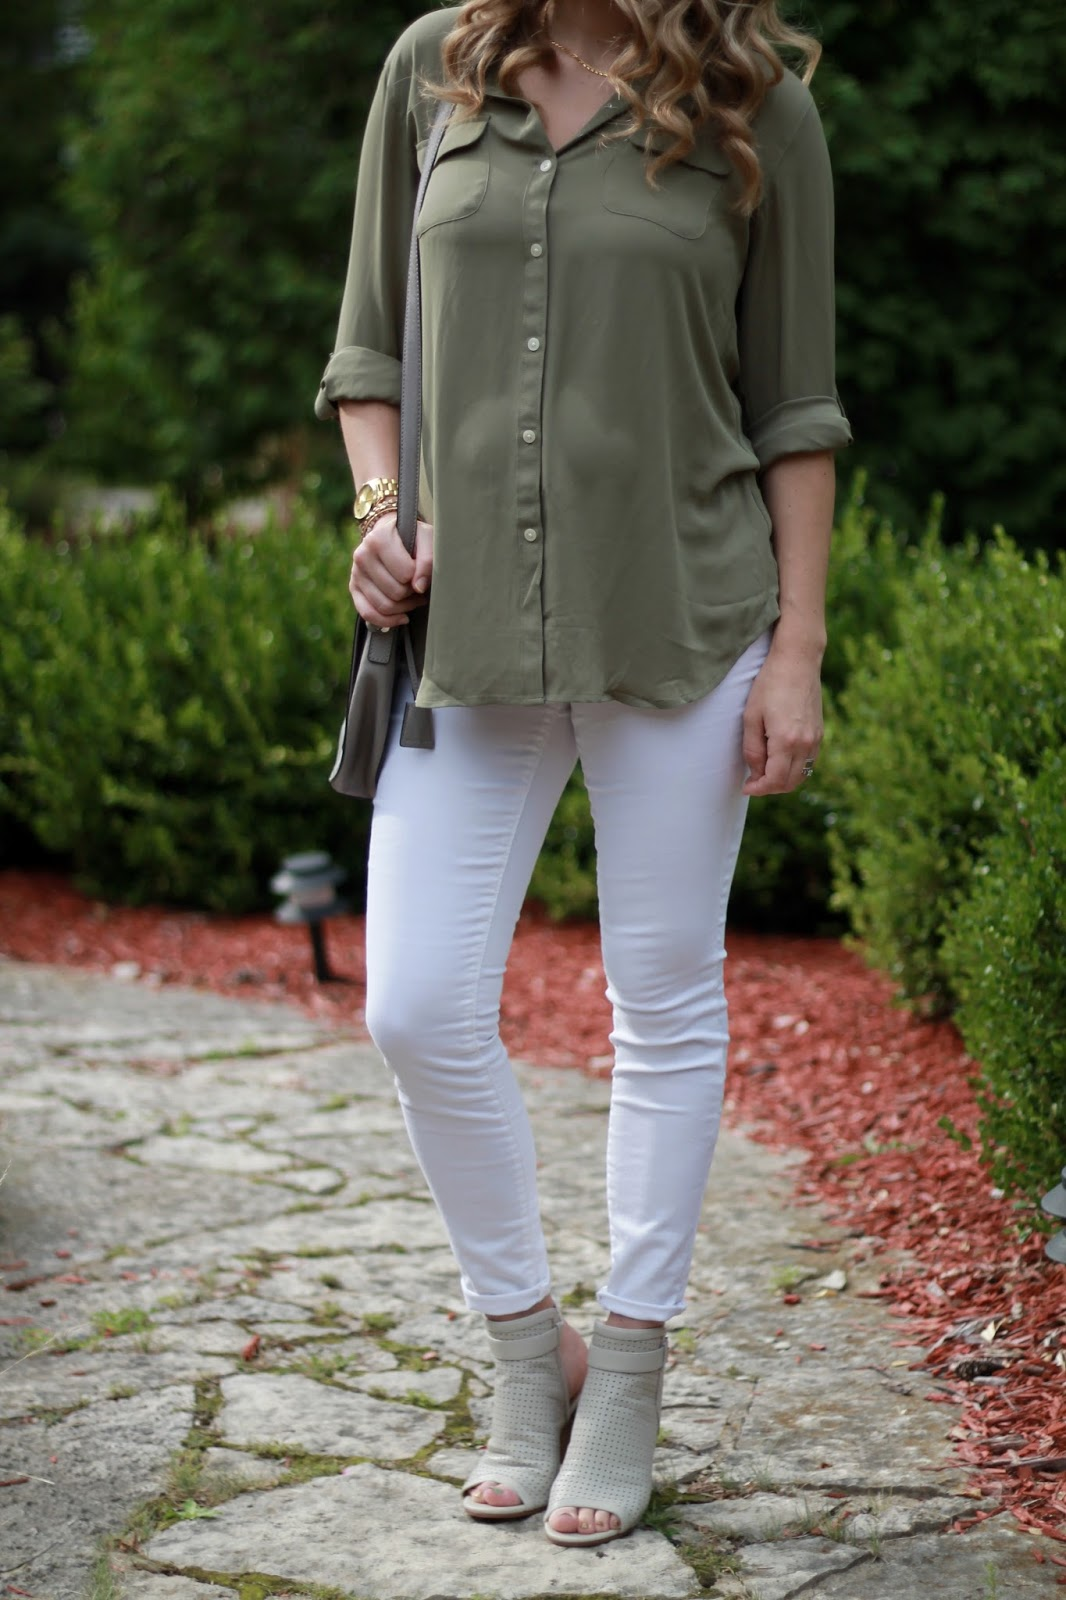 olive button up, white jeans, Sam Edelman peep toe booties, grey crossbody bag, summer maternity outfit, transitional fall outfit, second trimester